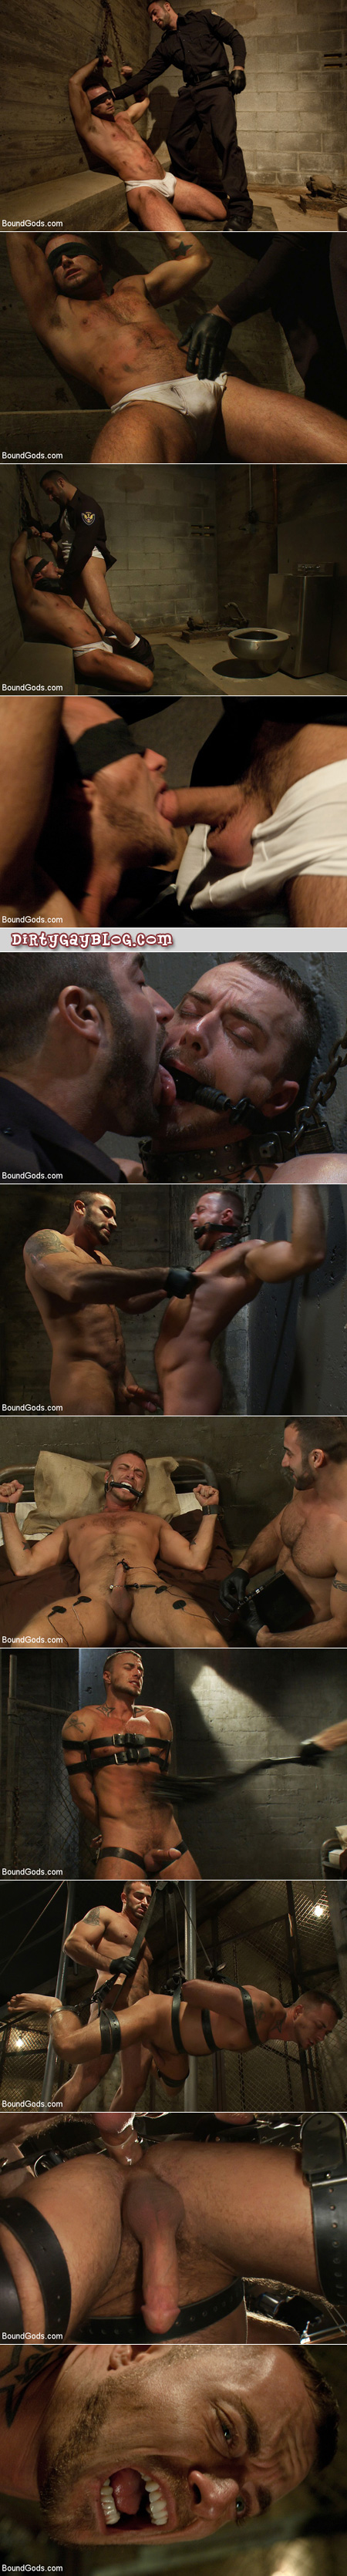 Muscle man uses sex toys, whips, e-stim and other devices to get off his hairy friend.